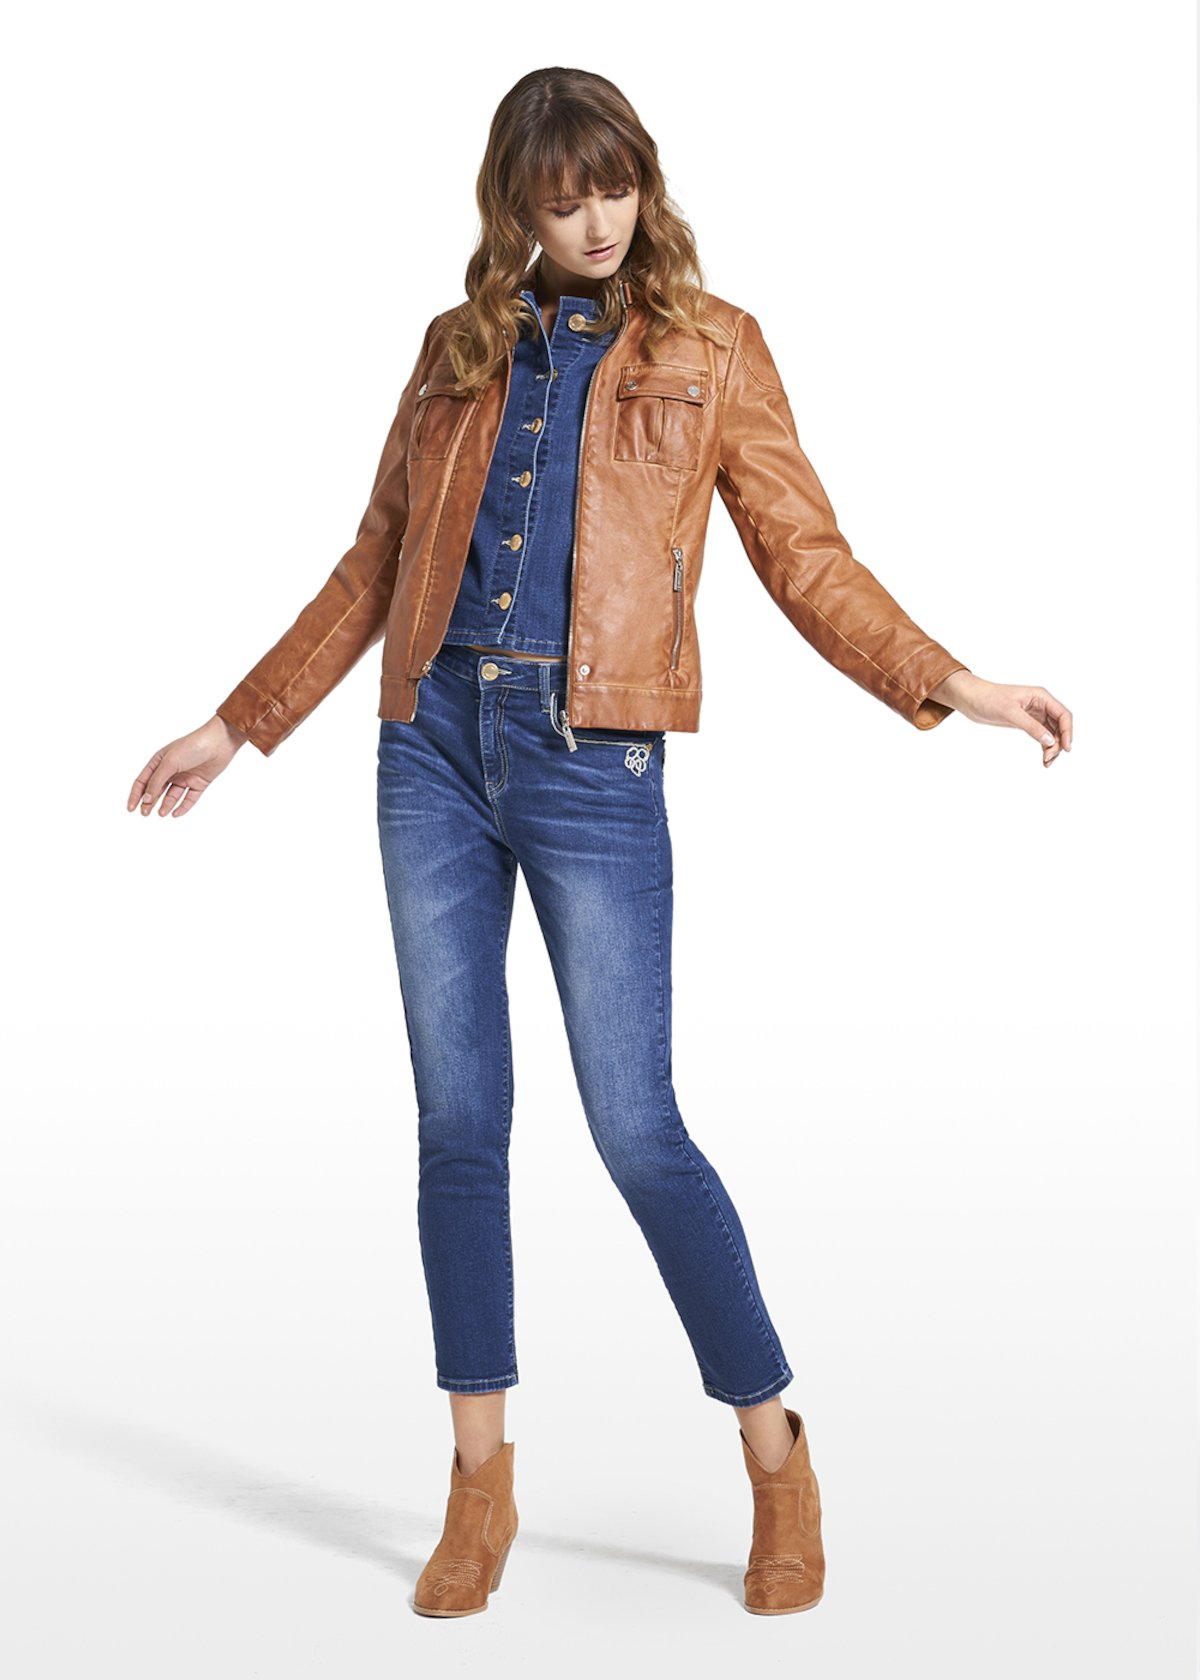 Faux leather jacket Gledis with round neck - Tobacco - Woman - Category image